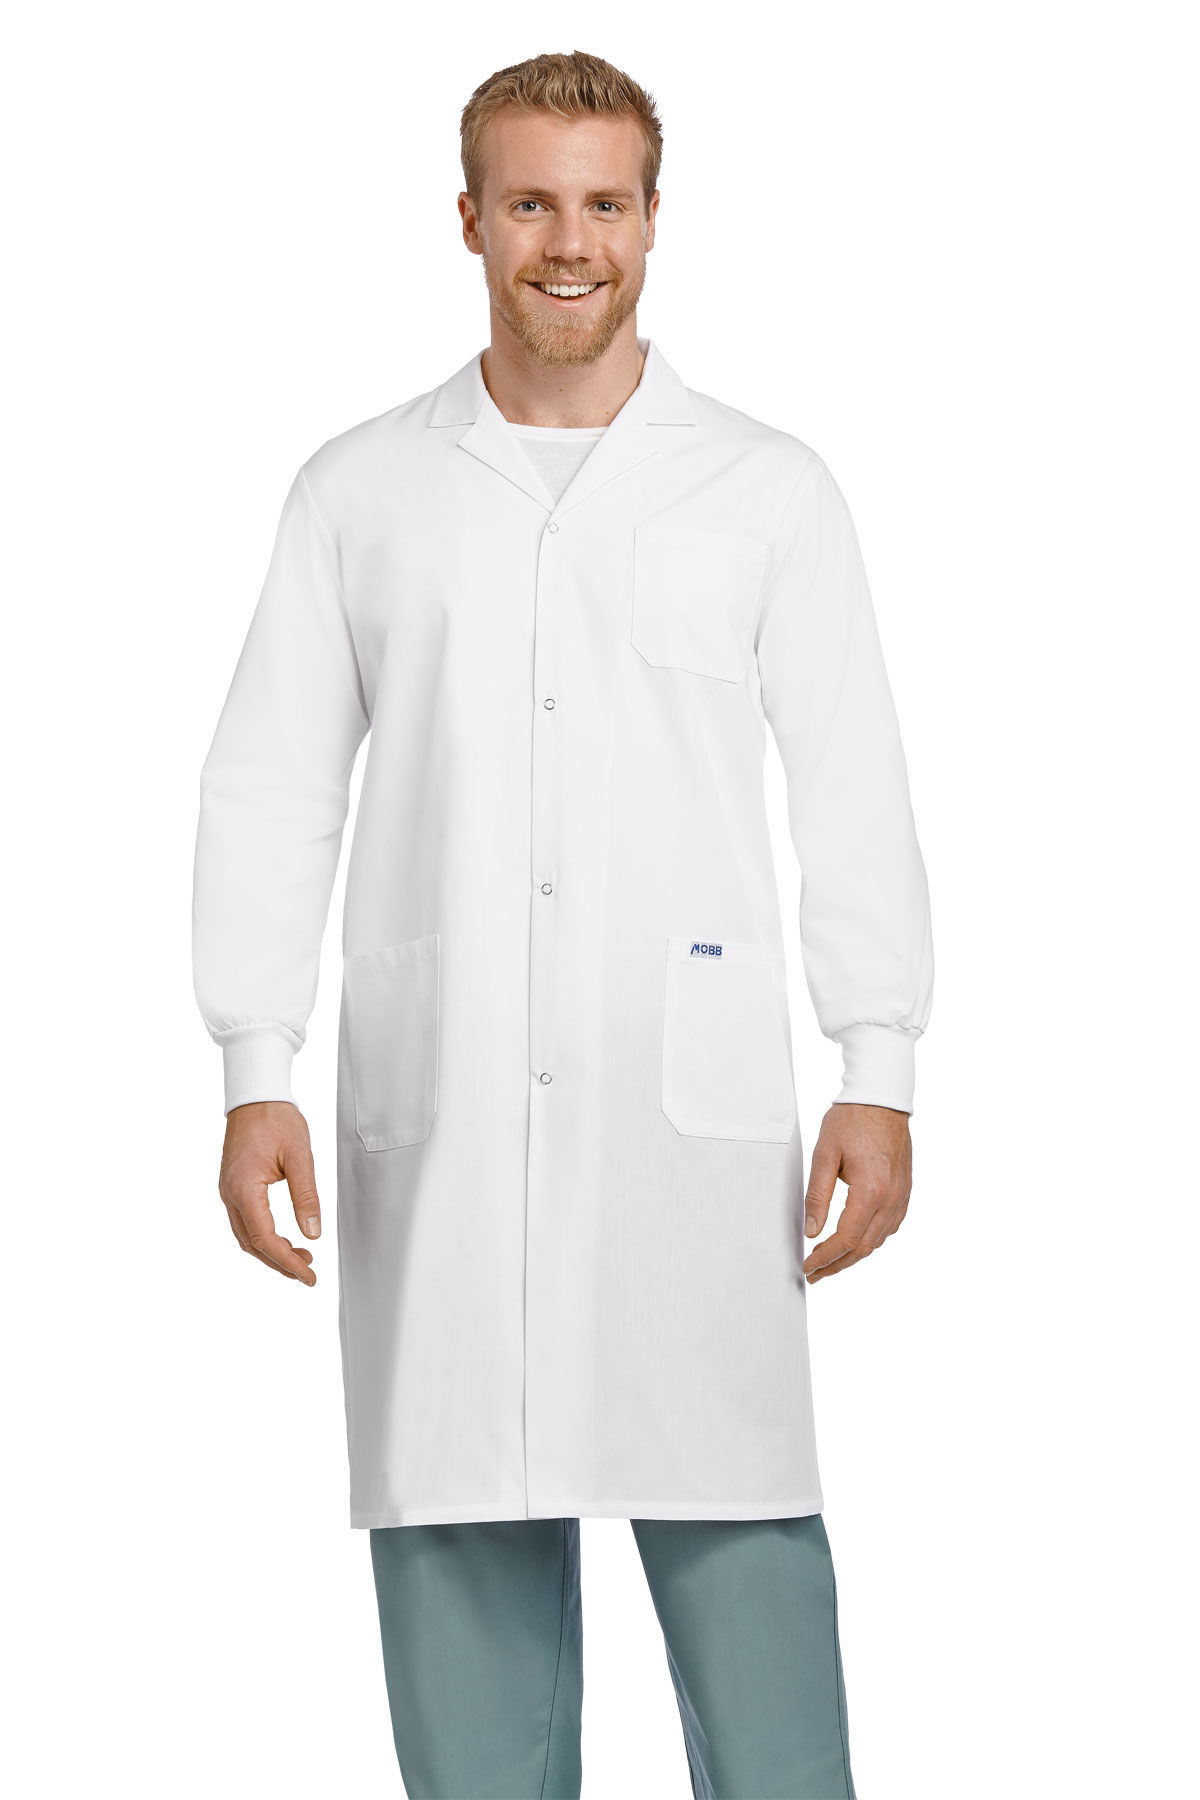 Picture of Full Length Unisex Snap Lab Coat With Knitted Cuffs - L507-M